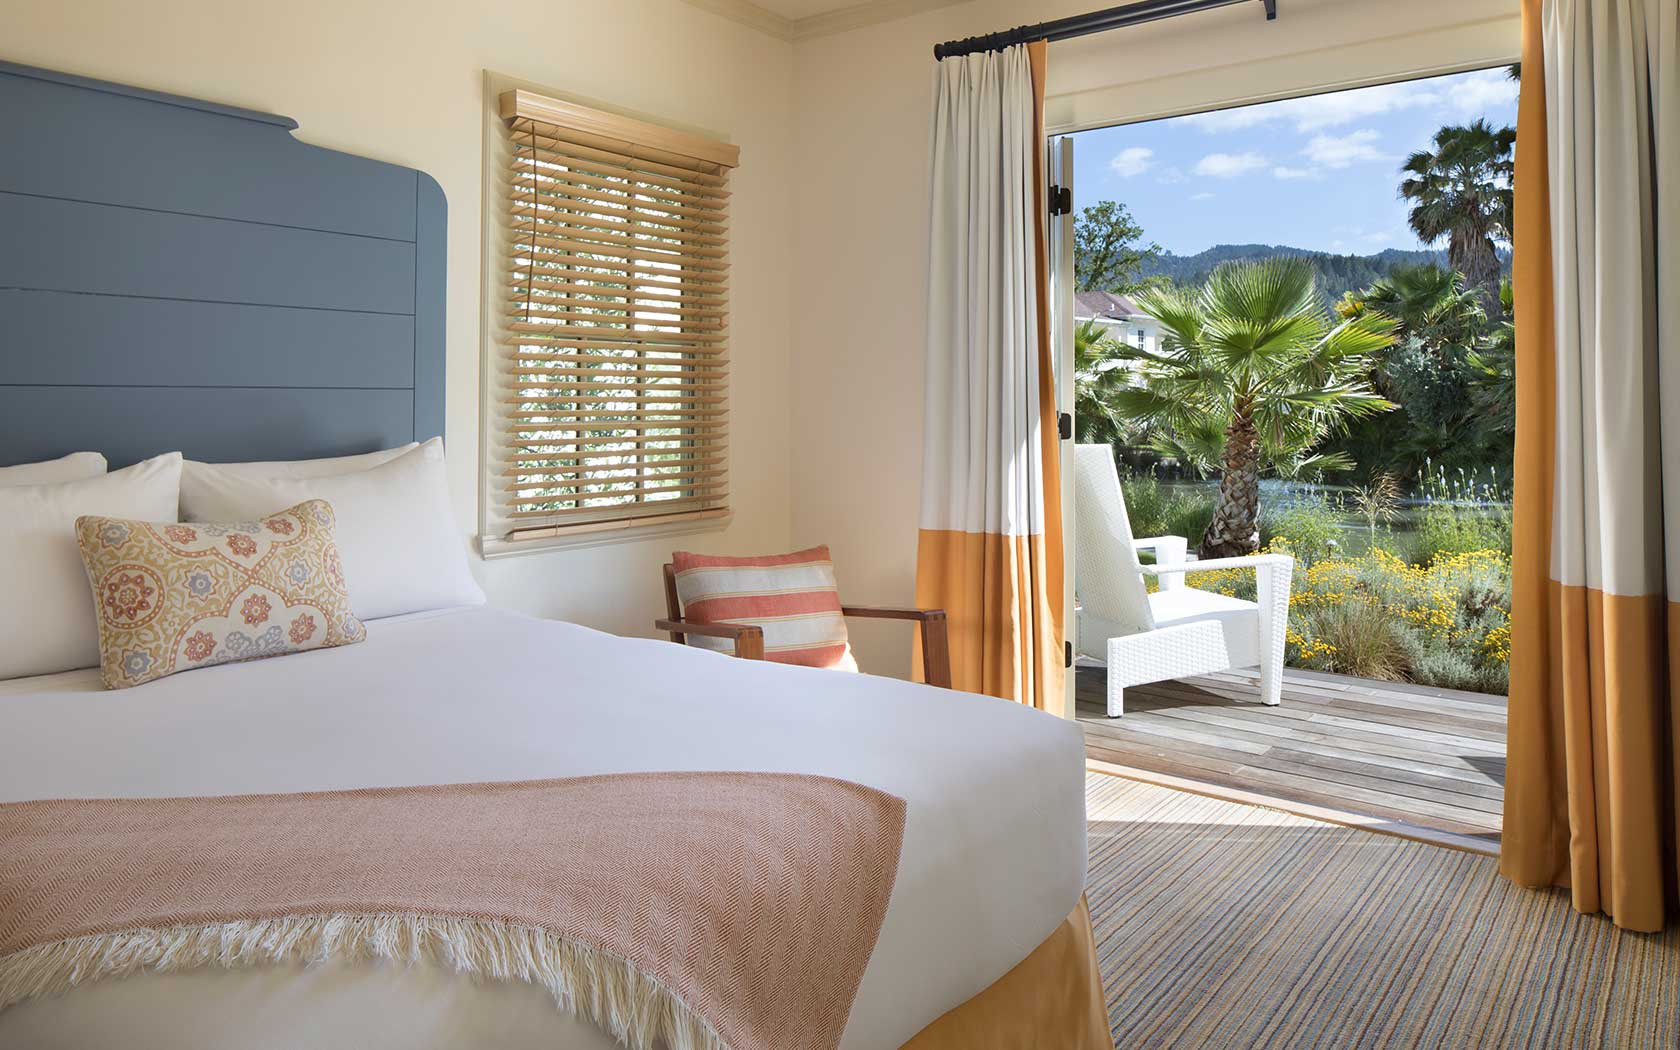 guest room with white sheets, orange accents colors, blue headboard, and a sliding glass door open leading to an walkout outdoor terrace